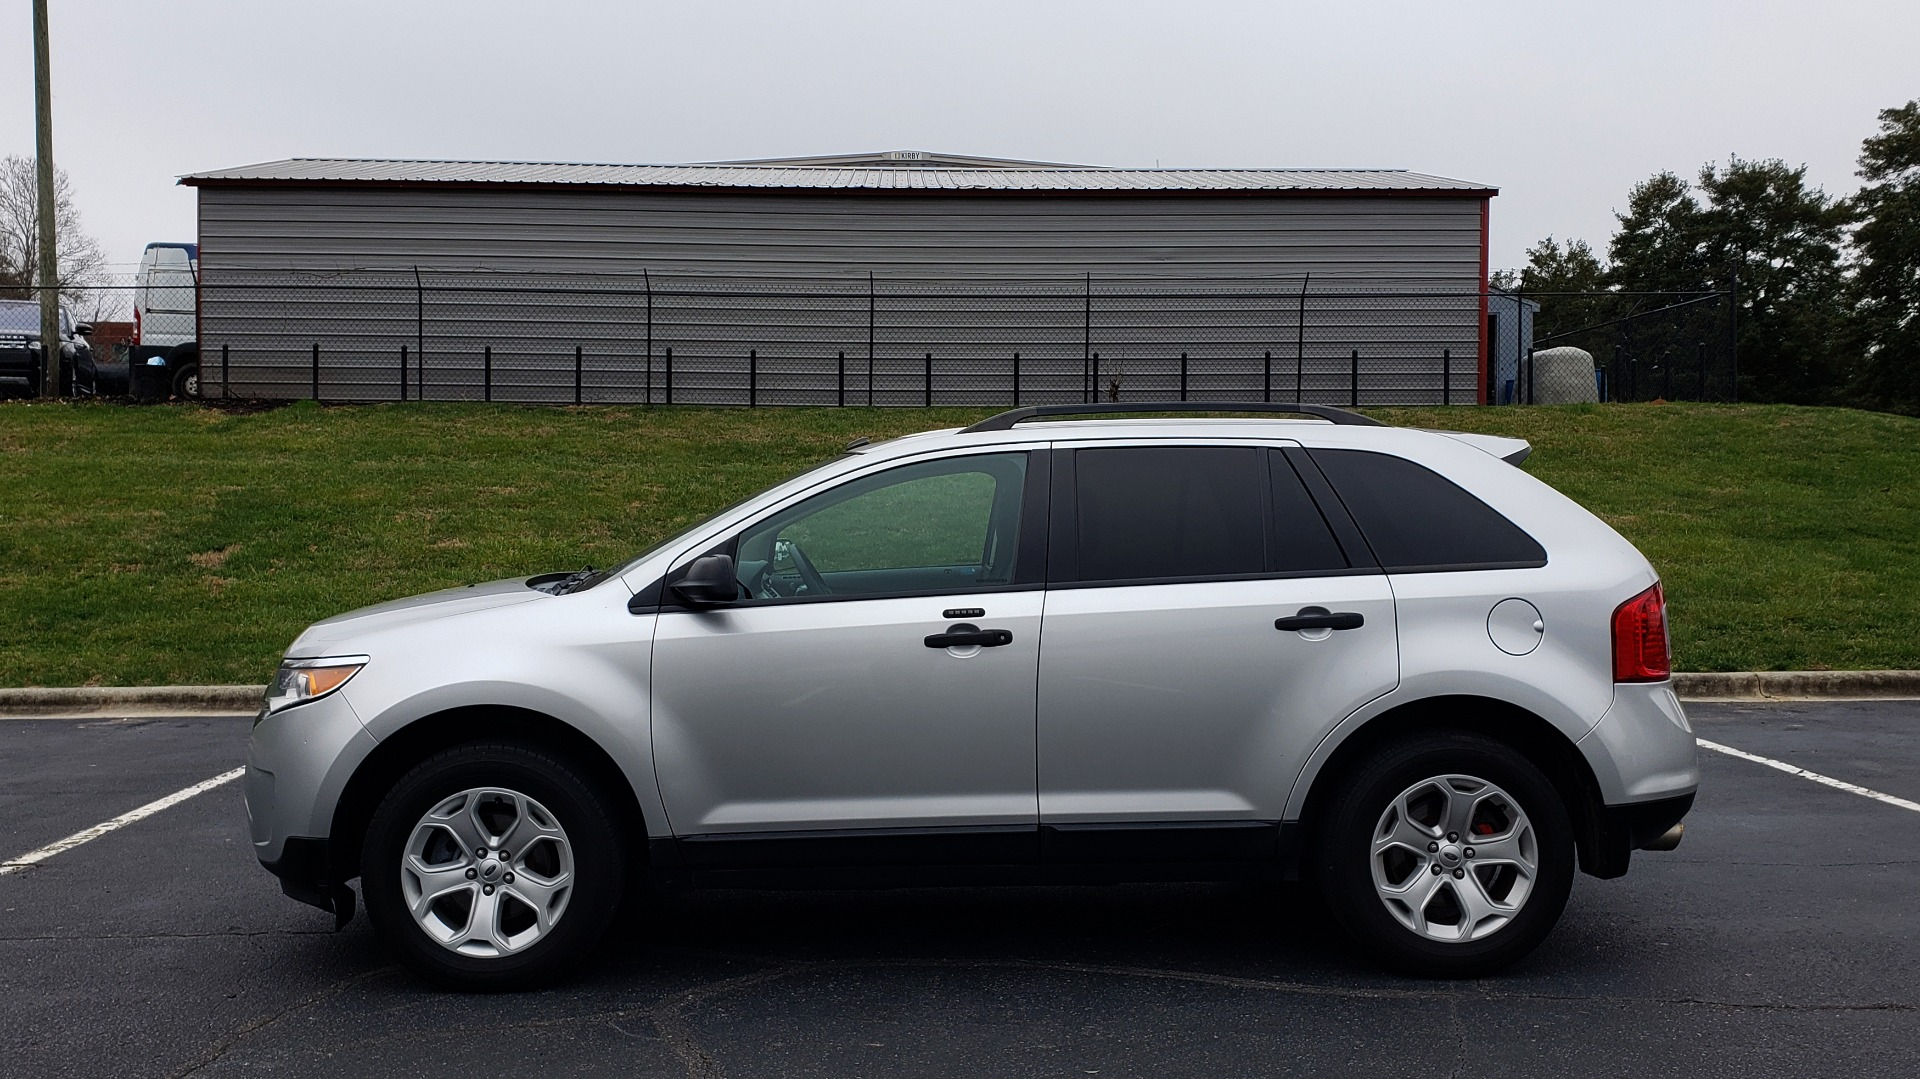 Used 2013 Ford EDGE SE / AWD / 18 IN WHEELS / SYNC / 3.5L V6 / AUTO for sale Sold at Formula Imports in Charlotte NC 28227 2